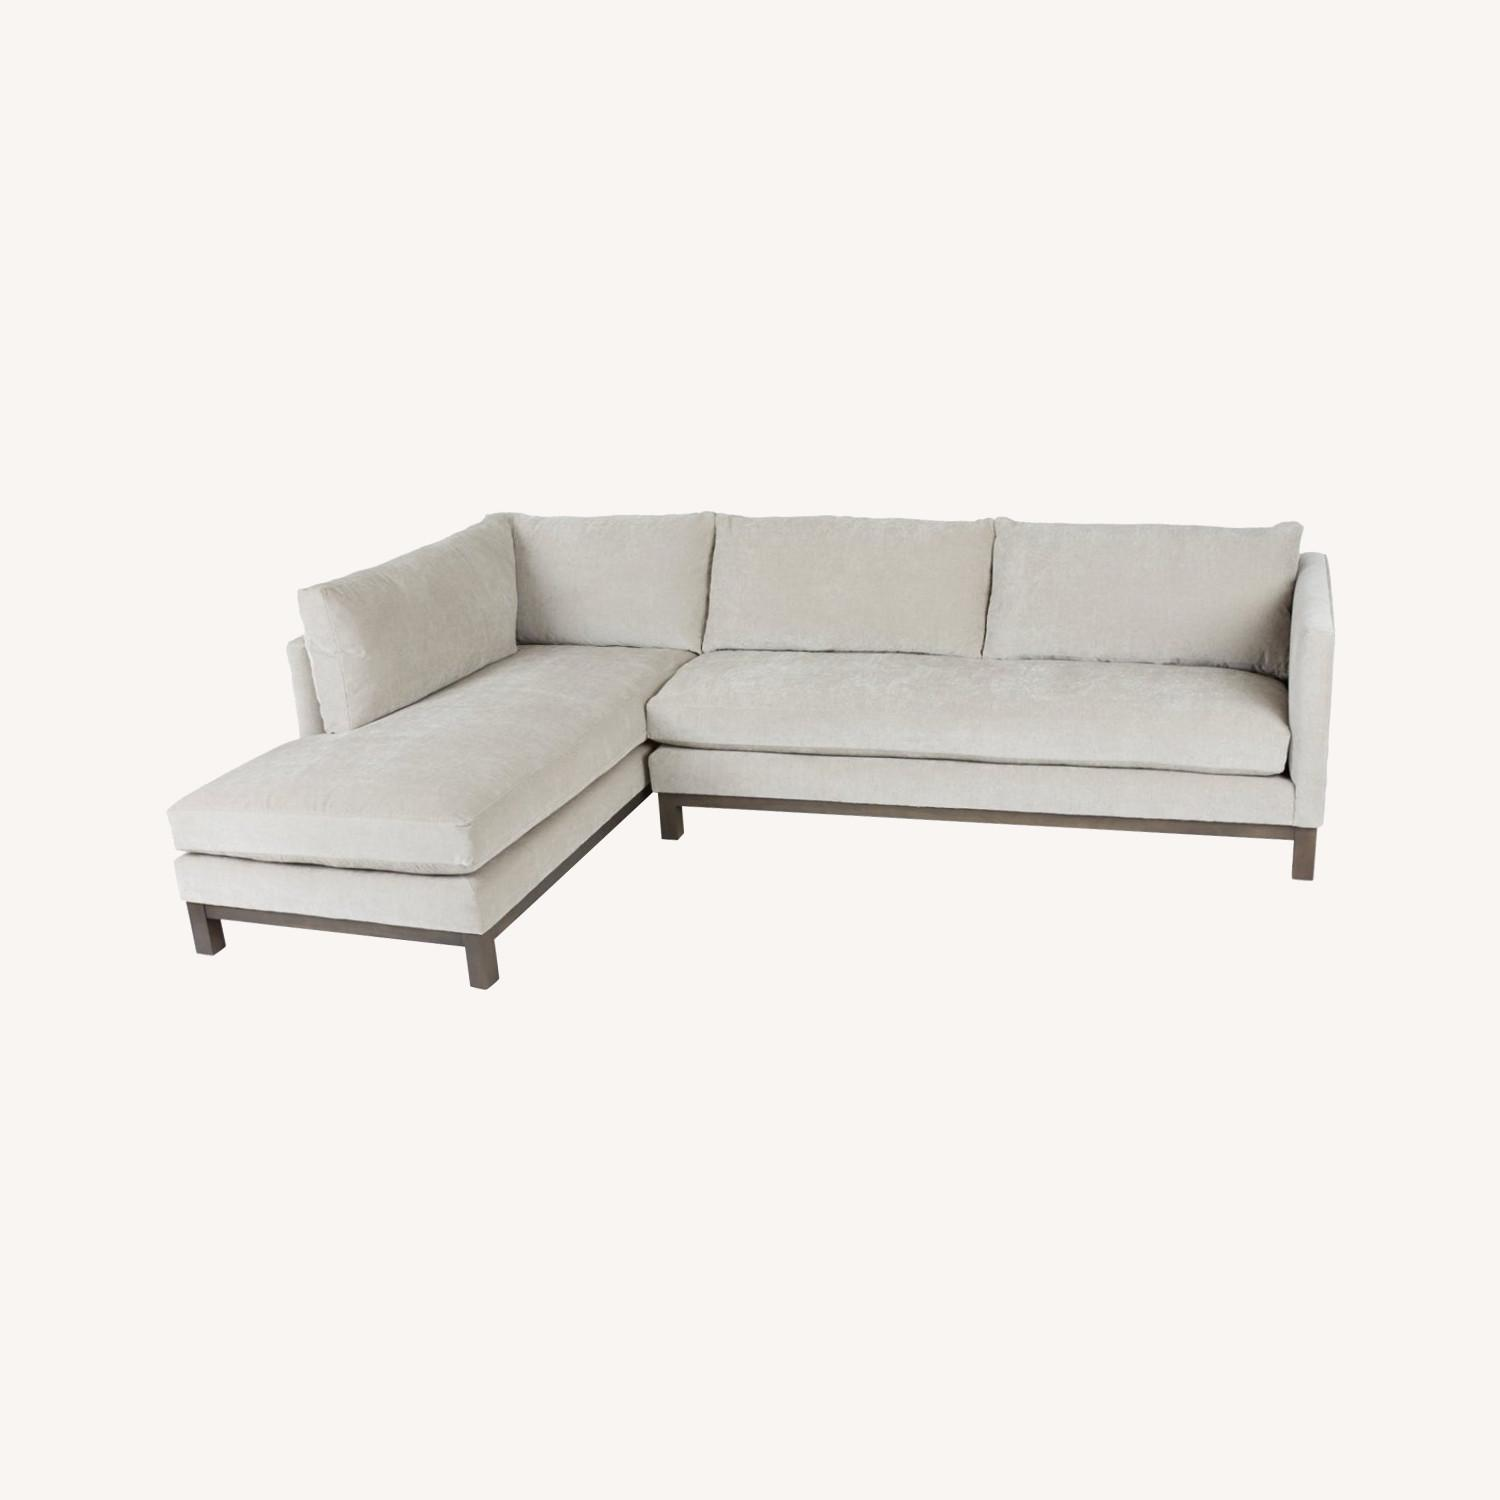 ABC Carpet & Home Prescott Sectional - image-0